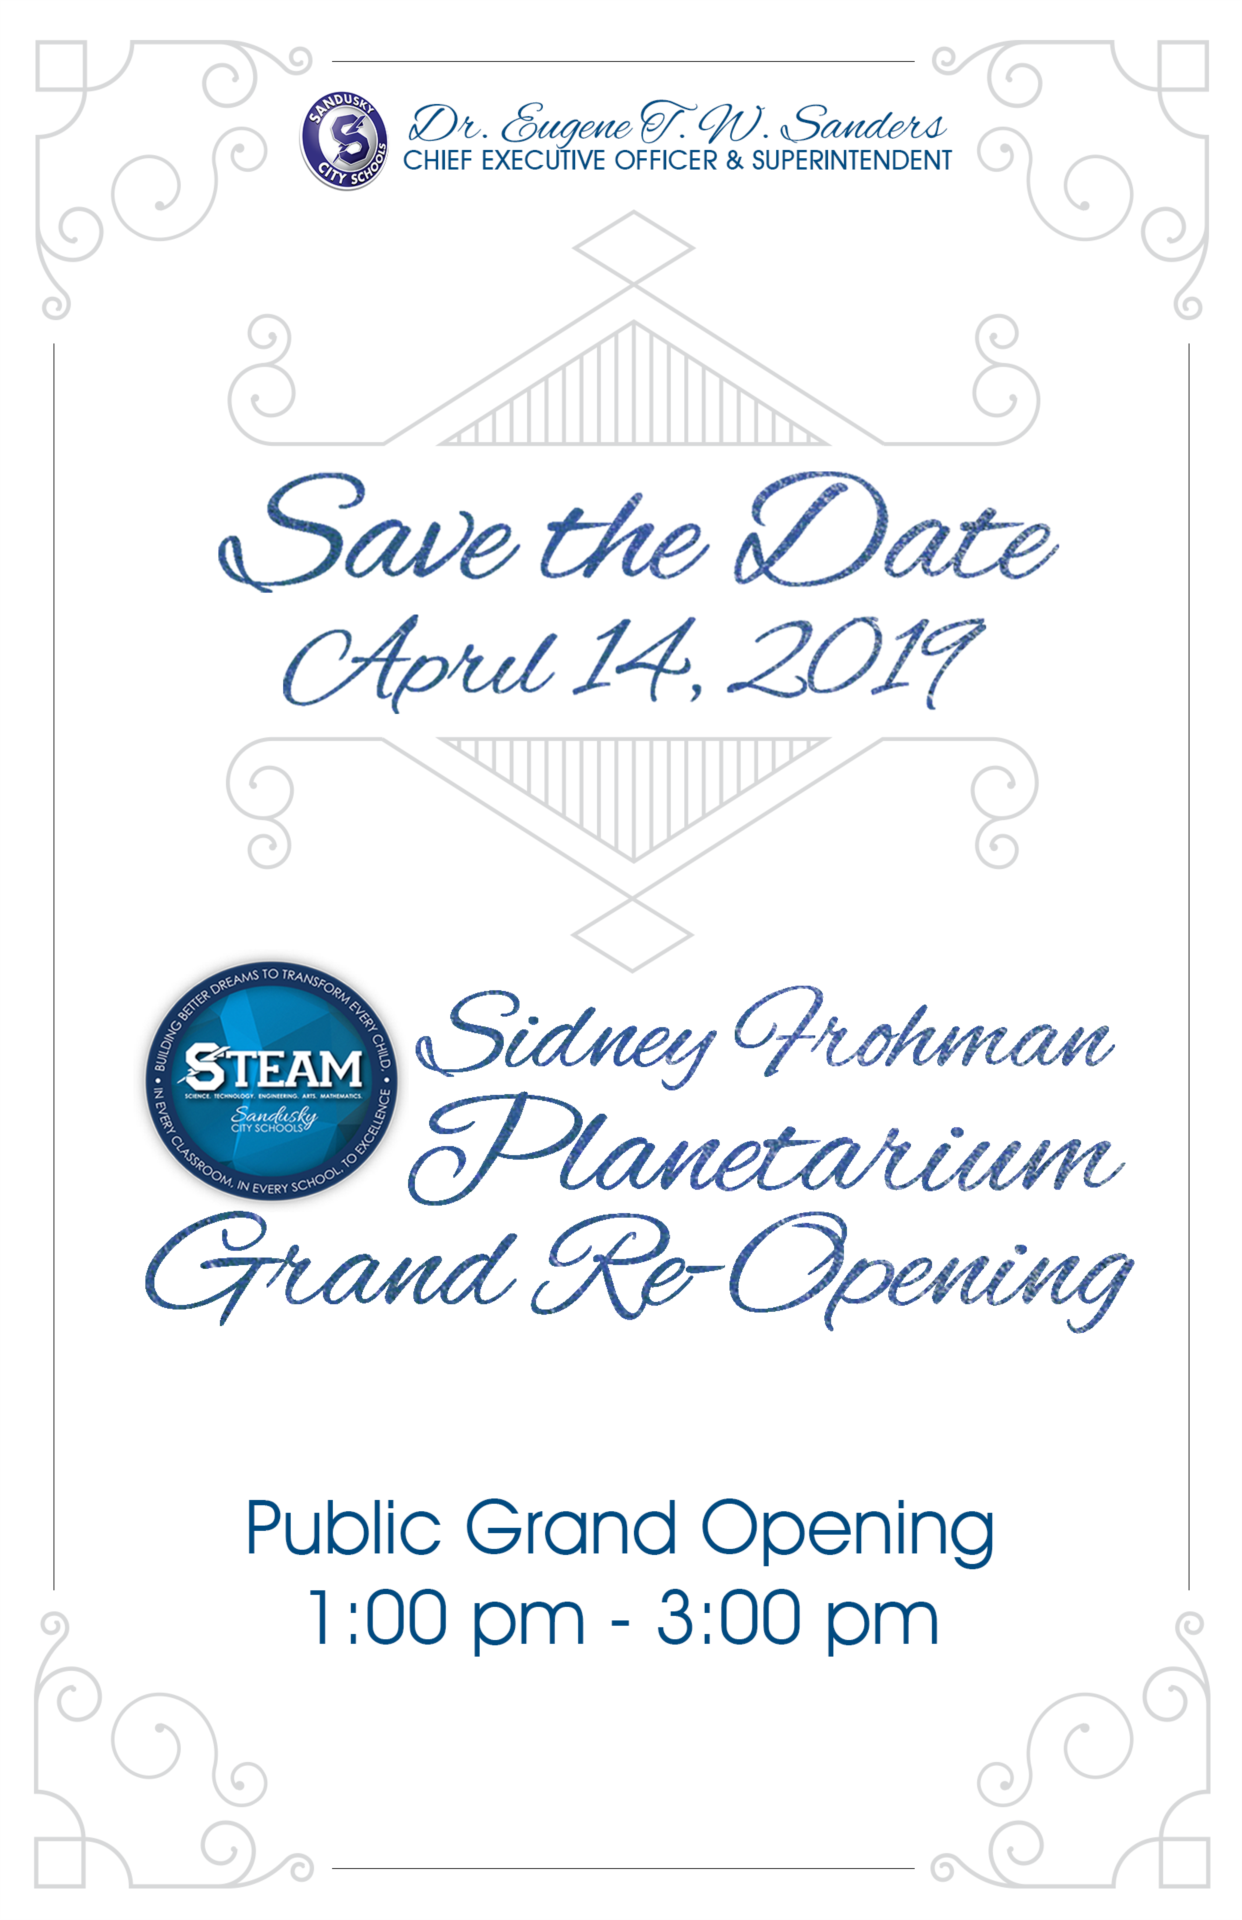 Sidney Frohman Save the Date